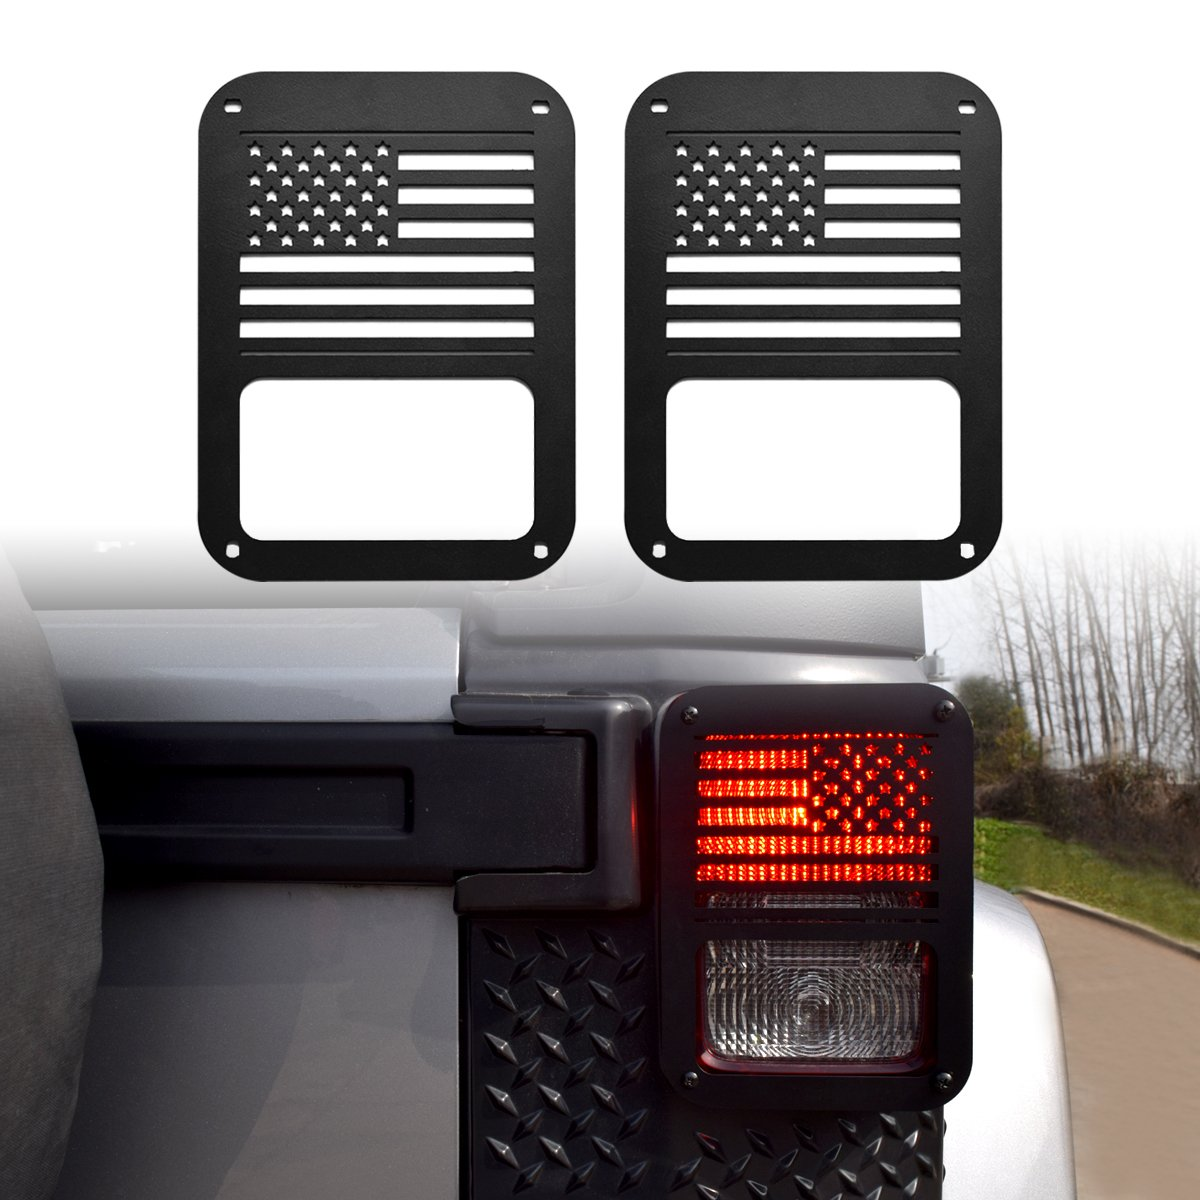 Black Dog Paw Stainless Steel Guard Light Cover Kit for Jeep Wrangler JK JKU Unlimited Rubicon Sahara X Off Road Sport Exterior Accessories Parts 2007 2008 2009 2010 2011 2012 2013 2014 2015 2016 2017